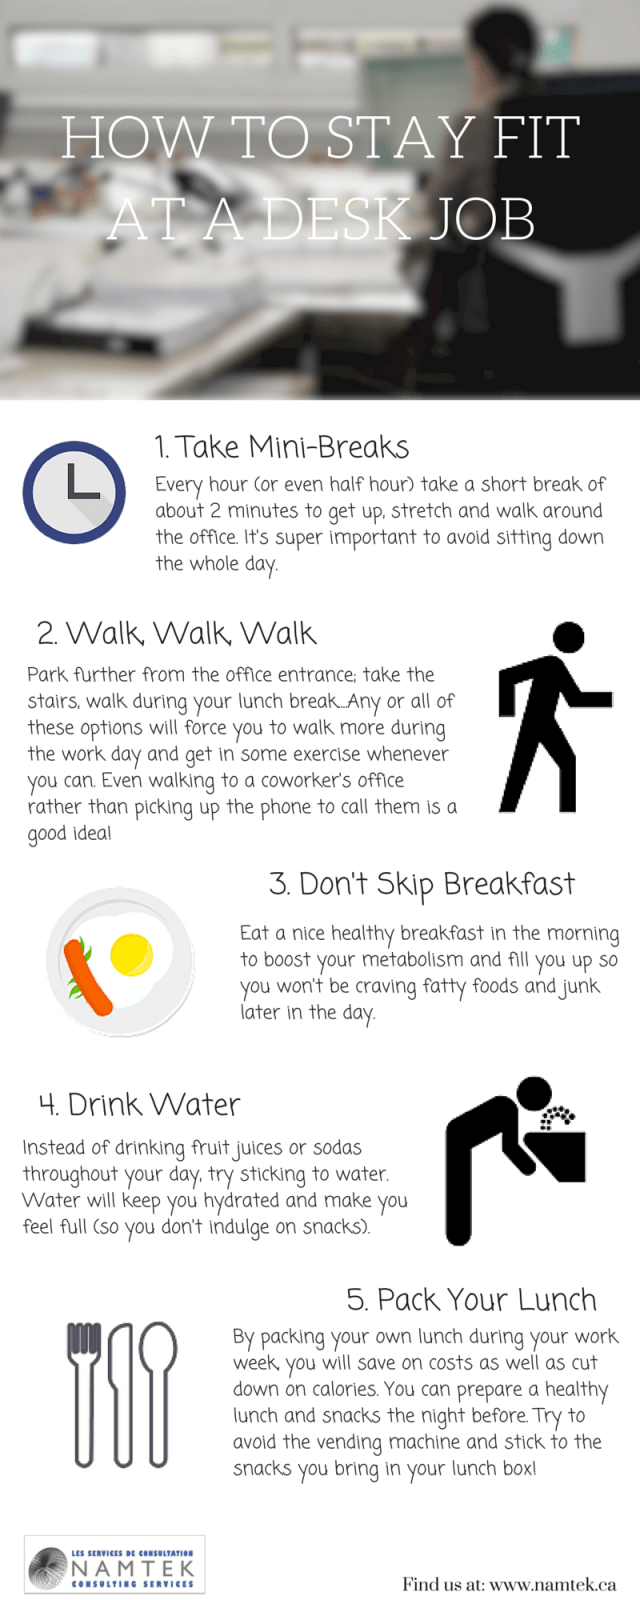 How To Stay Fit At A Desk Job